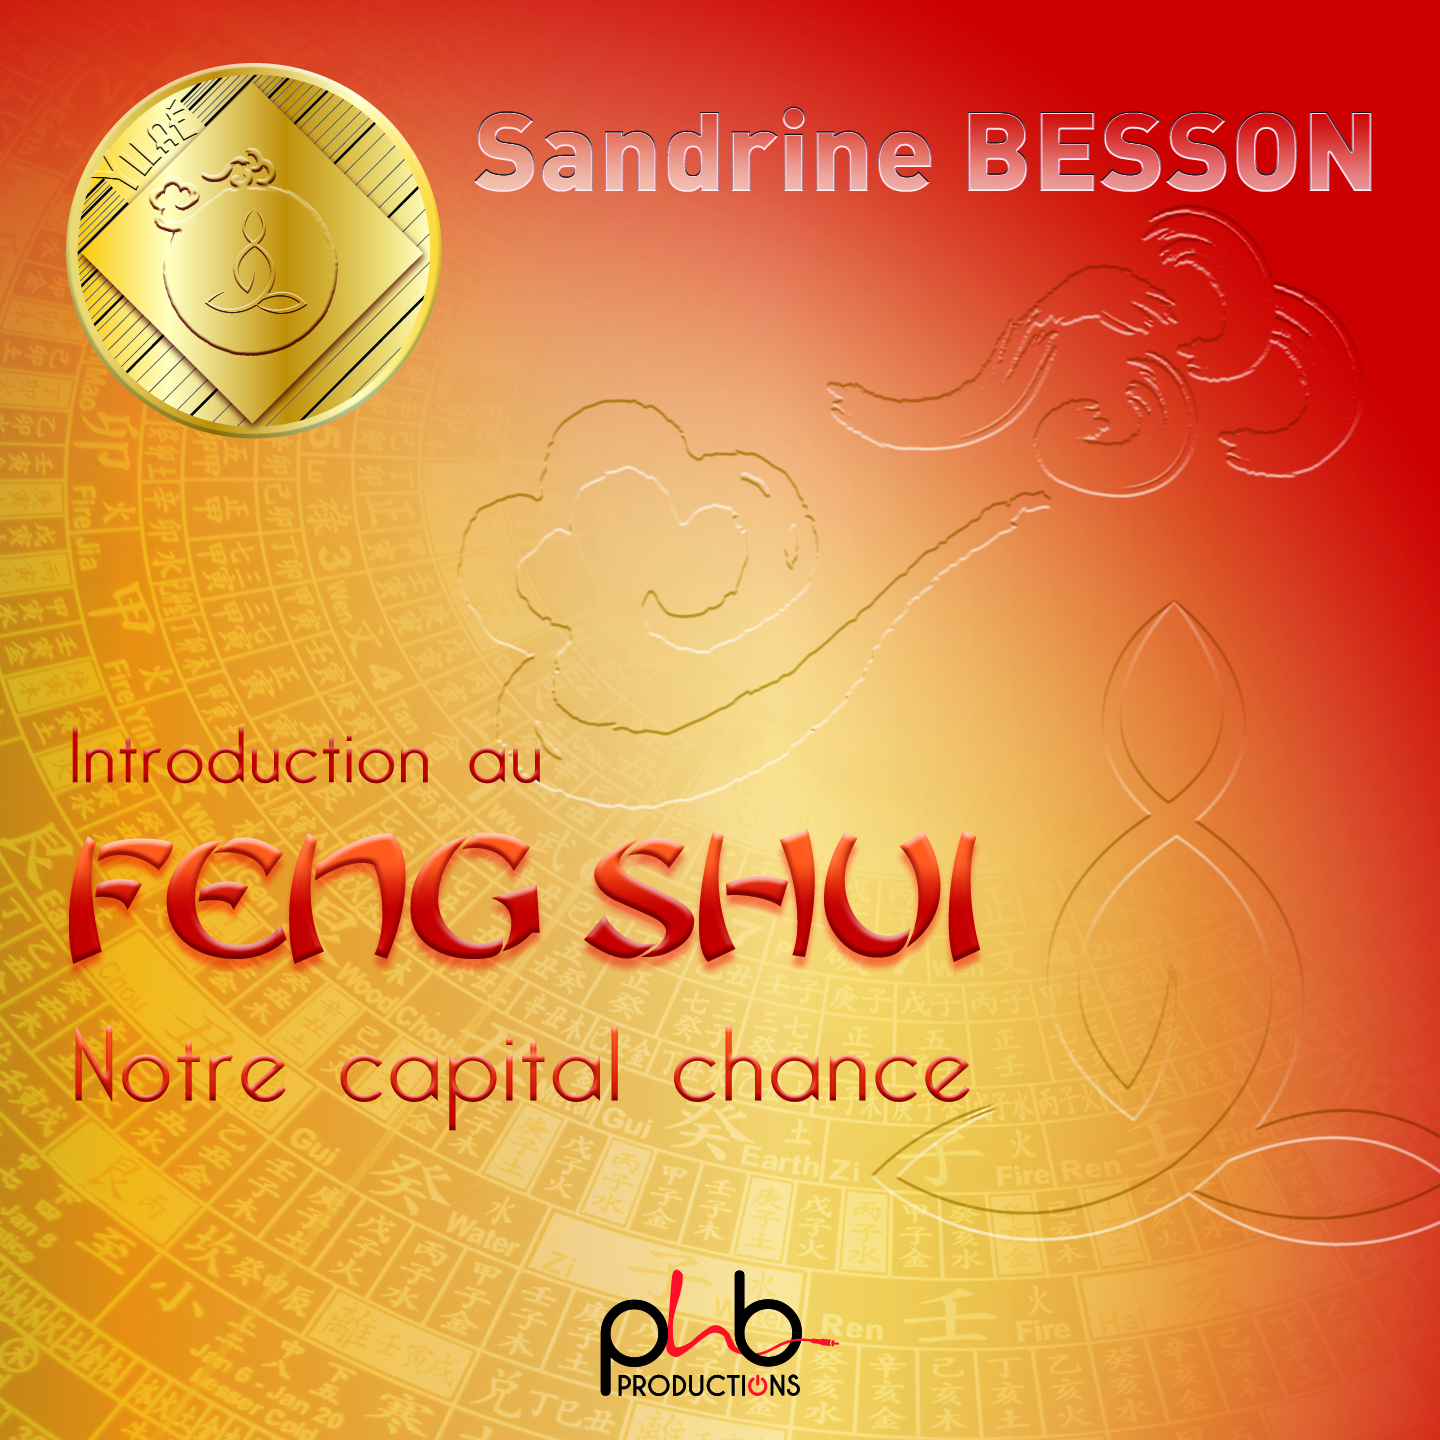 INITIATION AU FENG SHUI- NOTRE CAPITAL CHANCE